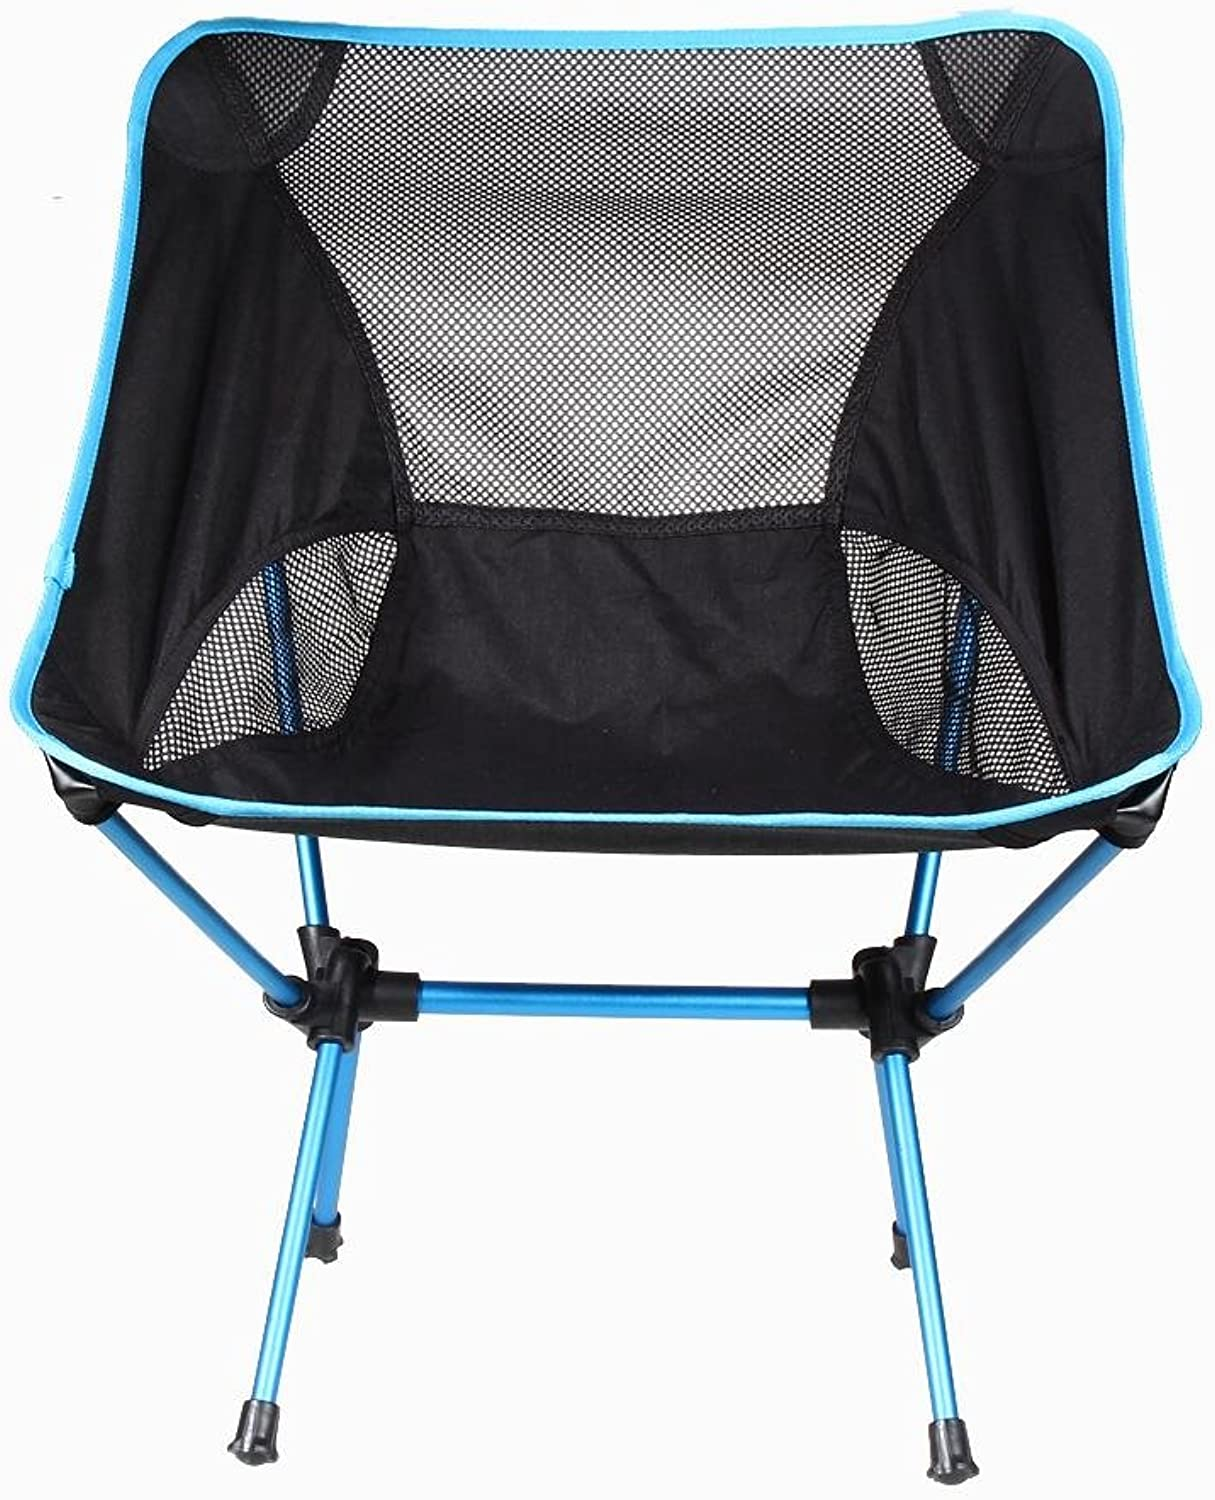 Folding Outdoor Camping Chair Portable Fishing Hiking Beach Chairs with Carry Bag for Outdoor Picnic Travel